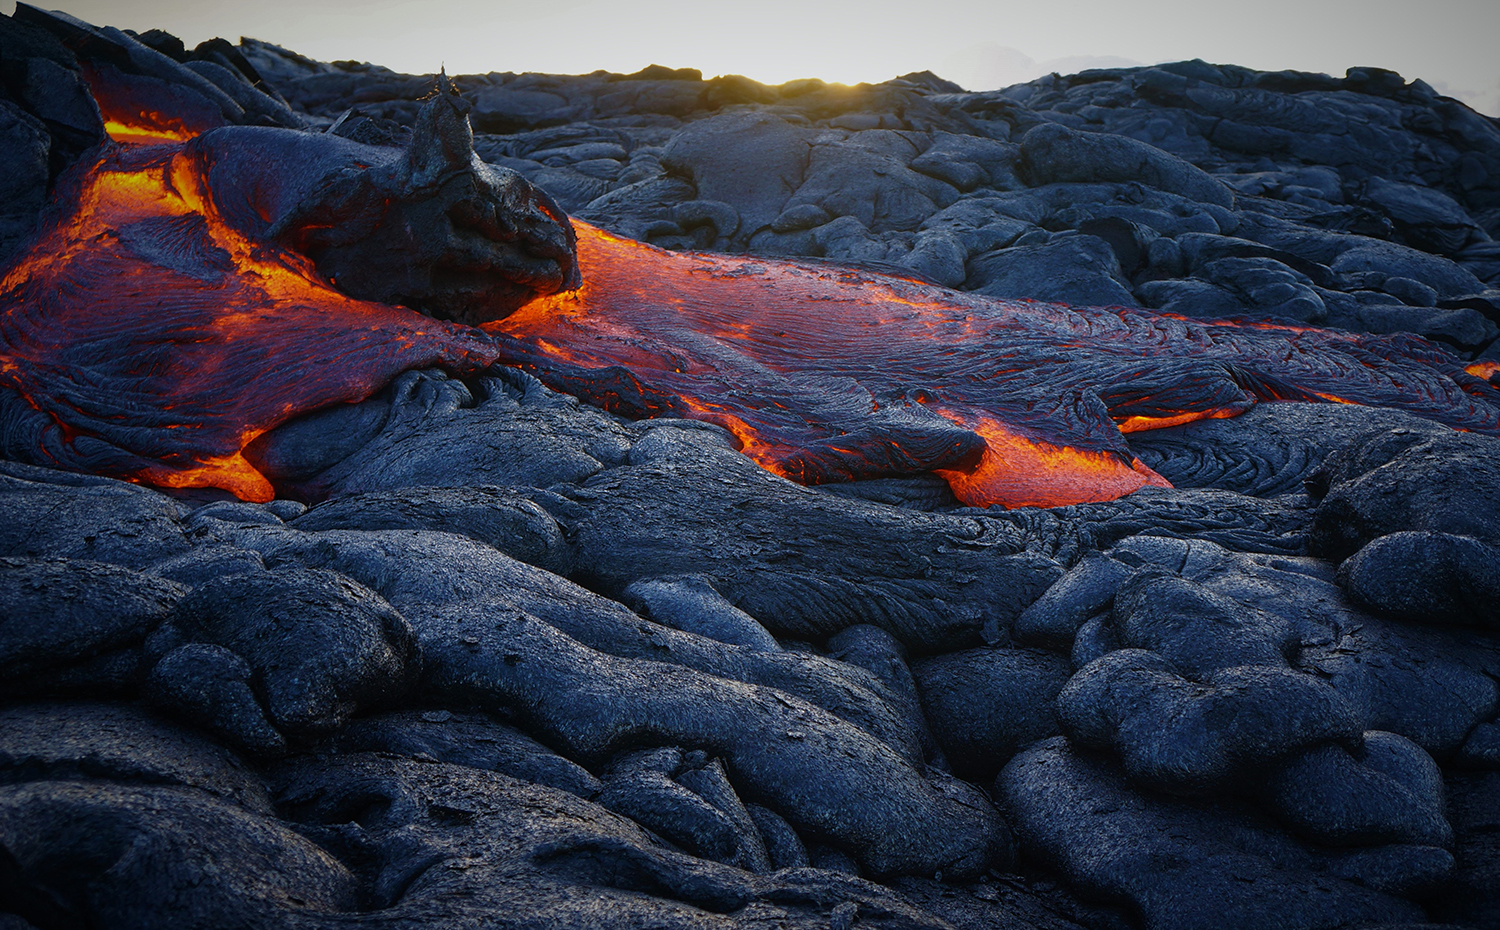 Lava flow at Hawaii Volcanoes National Park, United States